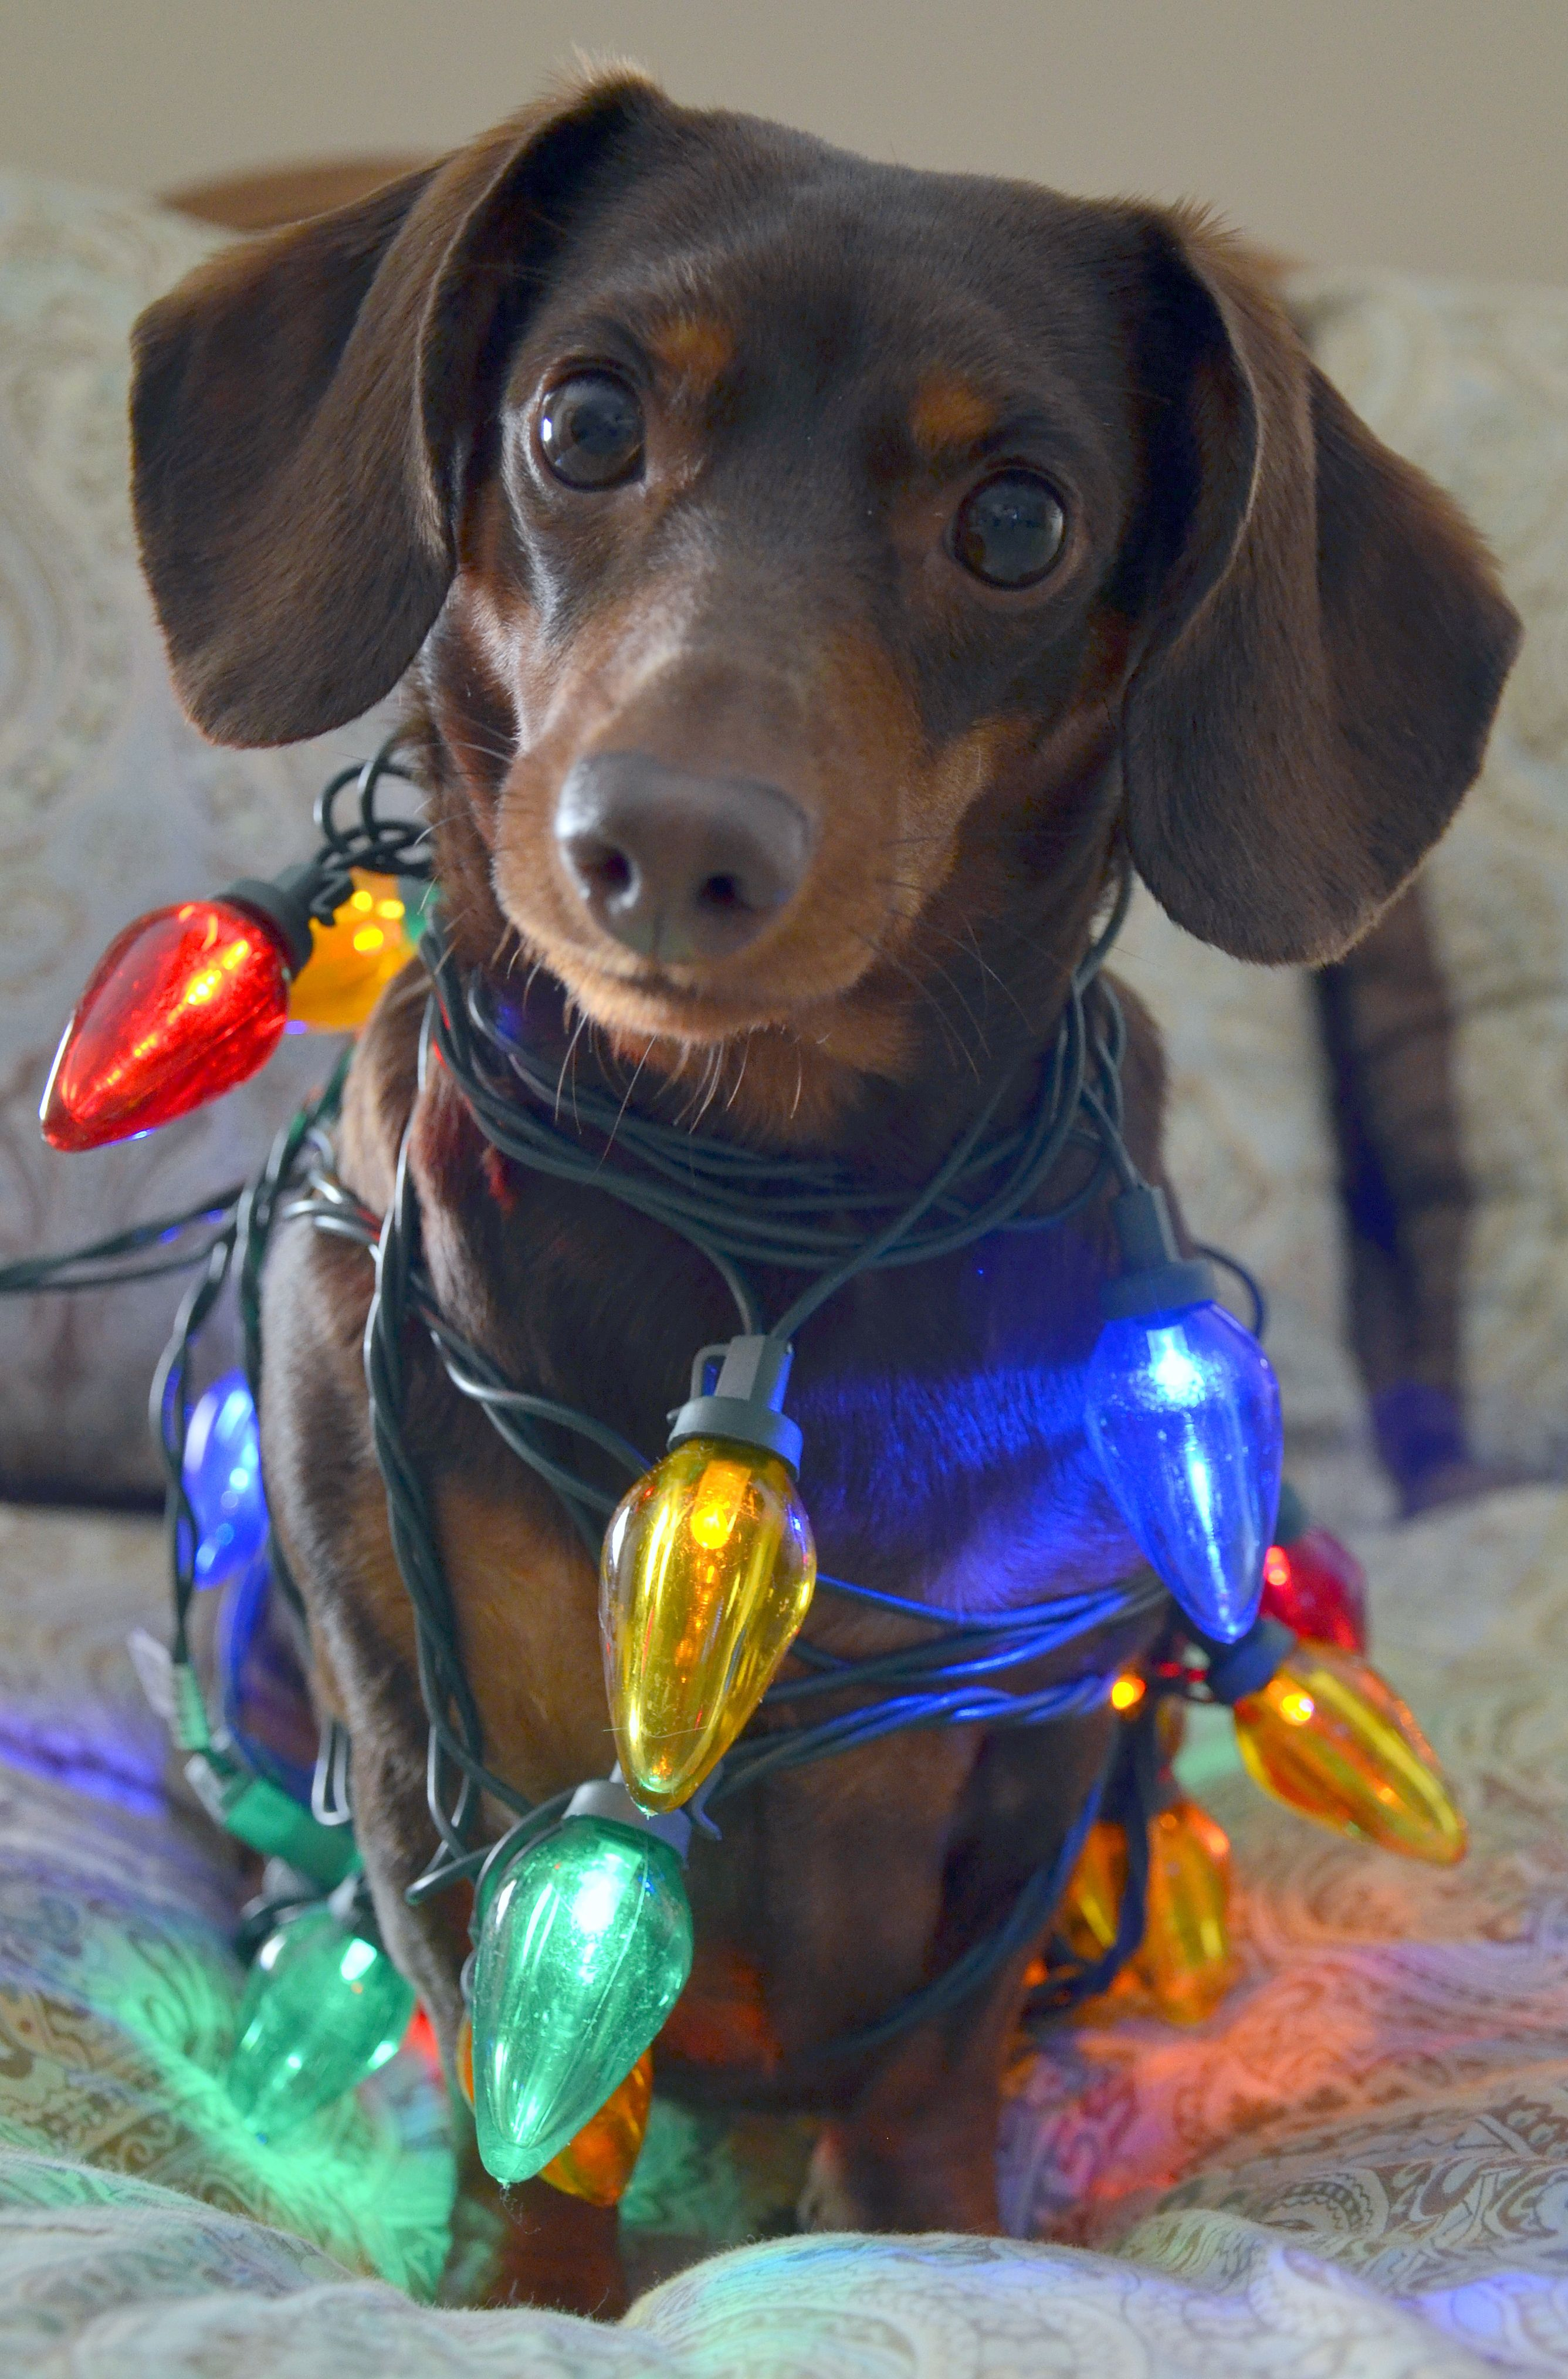 Silly dachshund tangled in christmas lights card dachshunds dog silly dachshund tangled in christmas lights card kristyandbryce Image collections